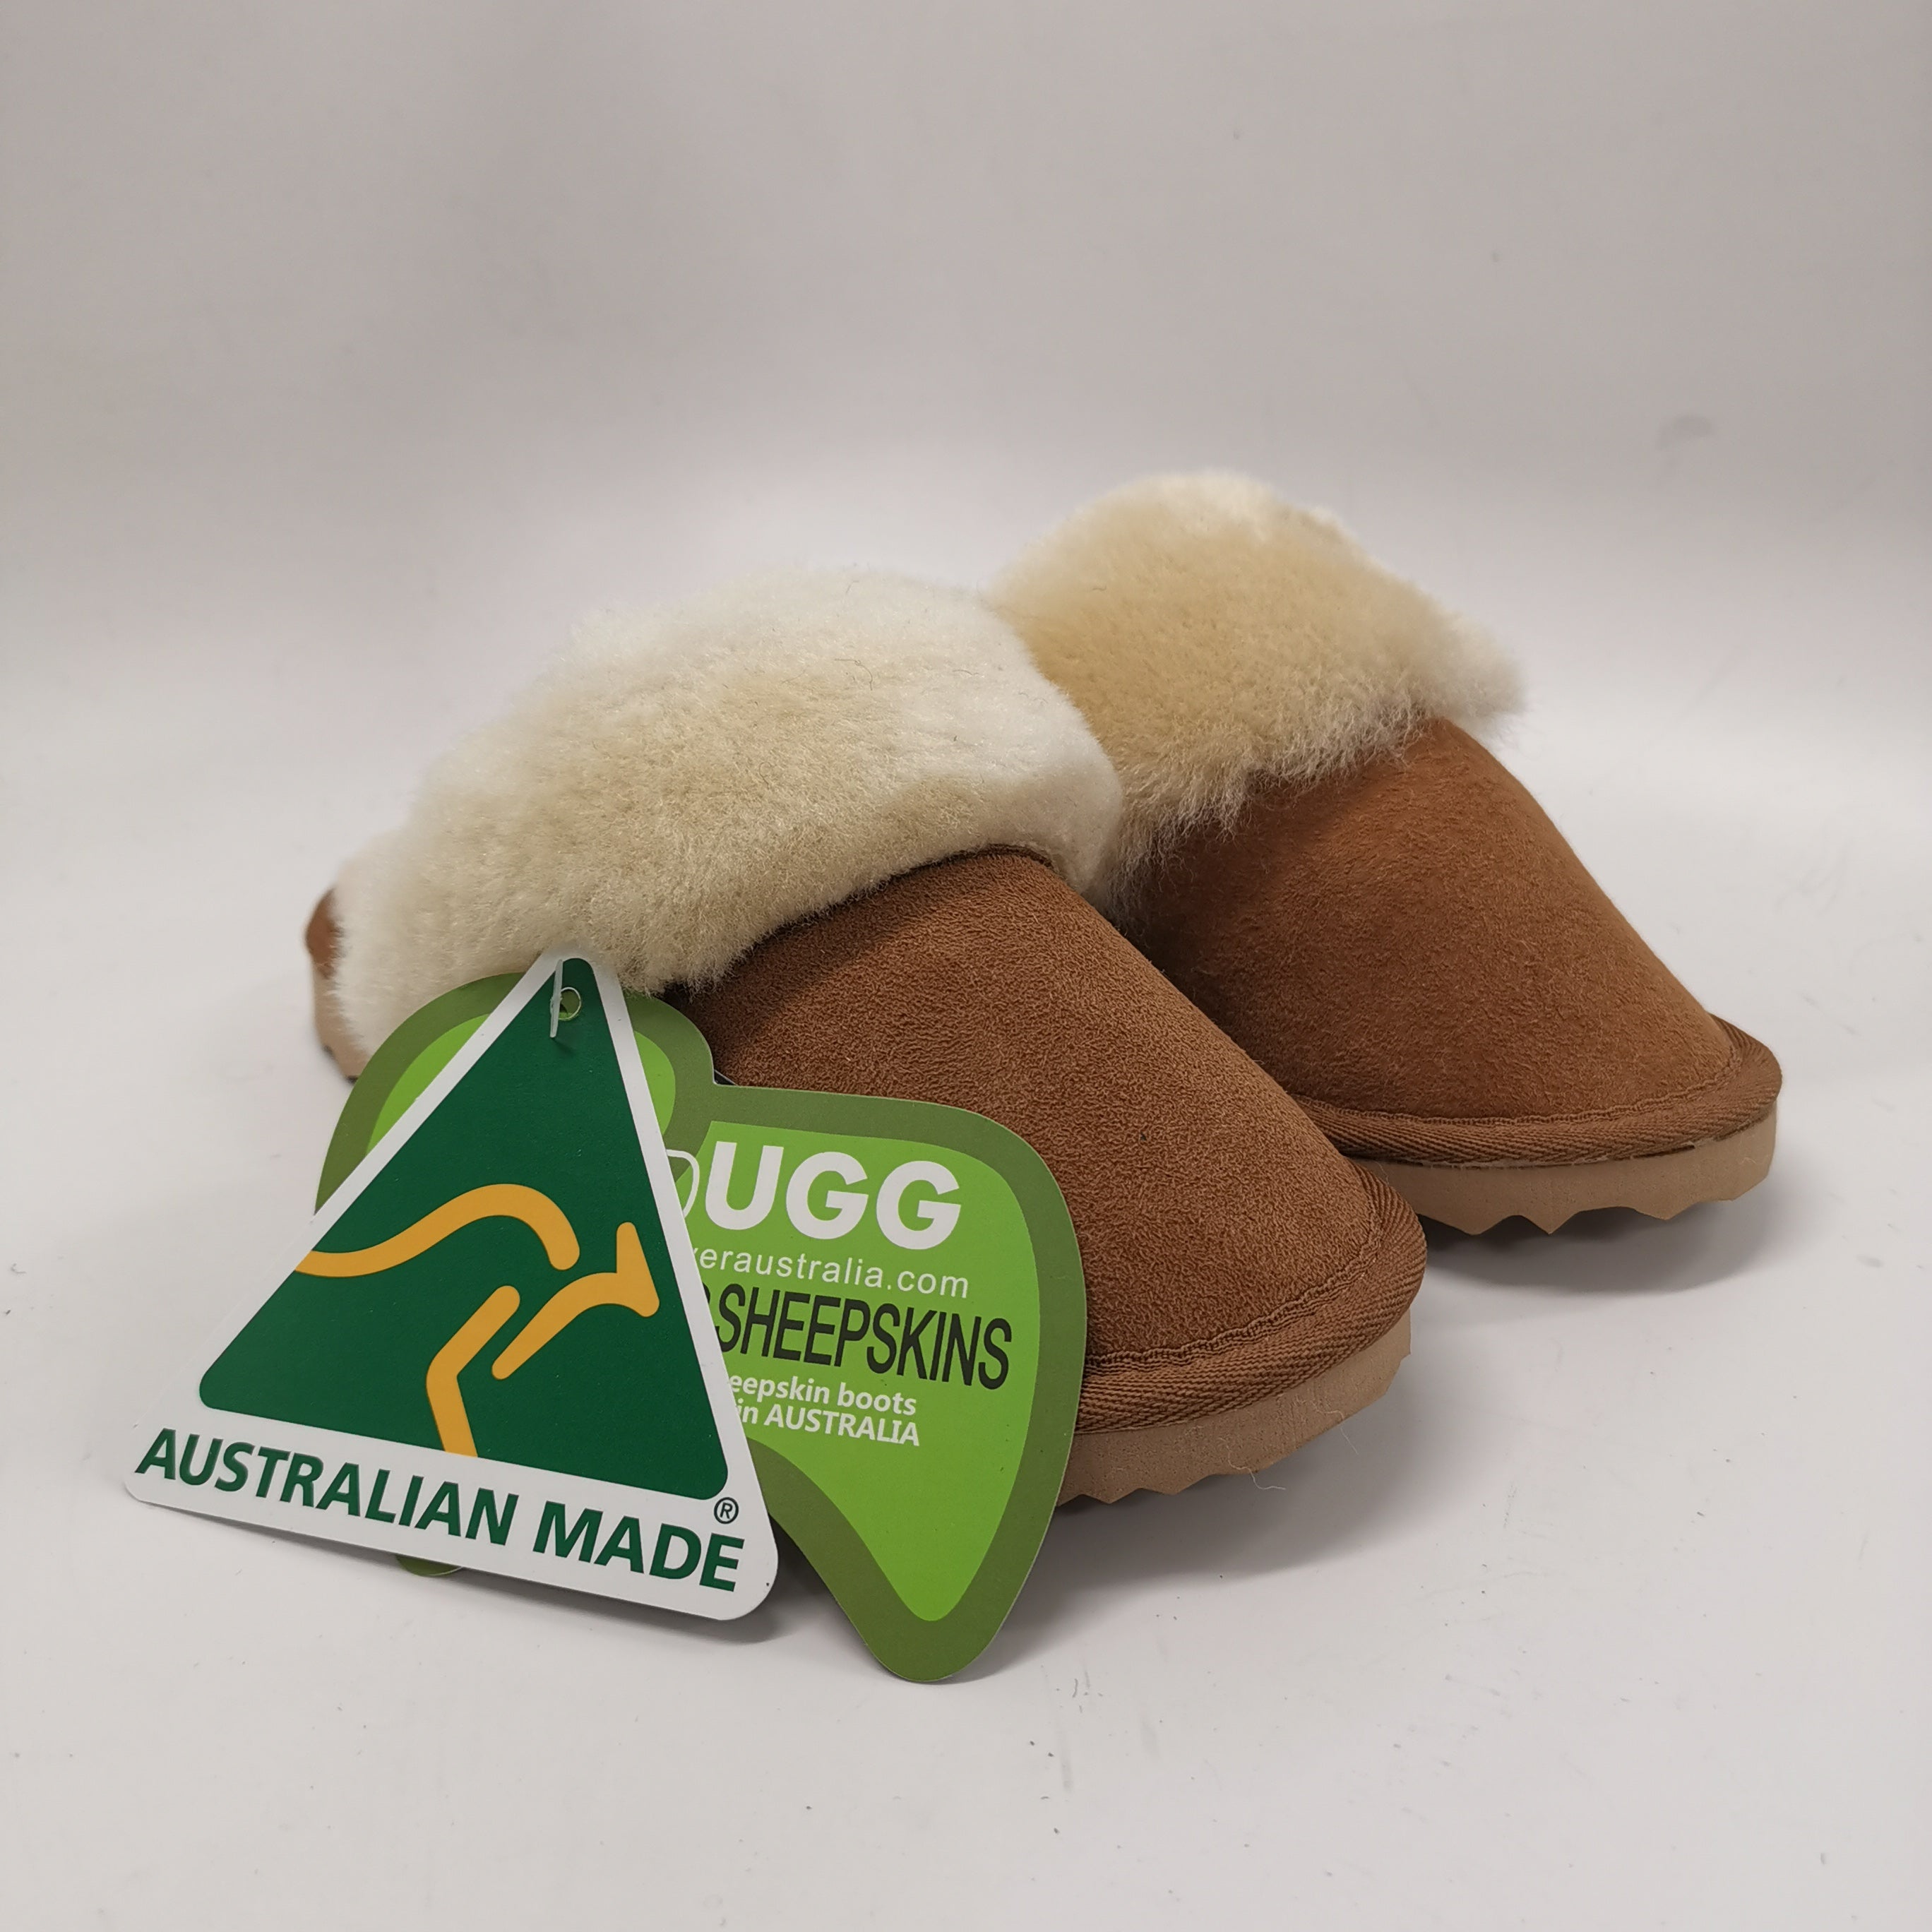 Australian Made Ugg Slippers Wool Collar Scuff